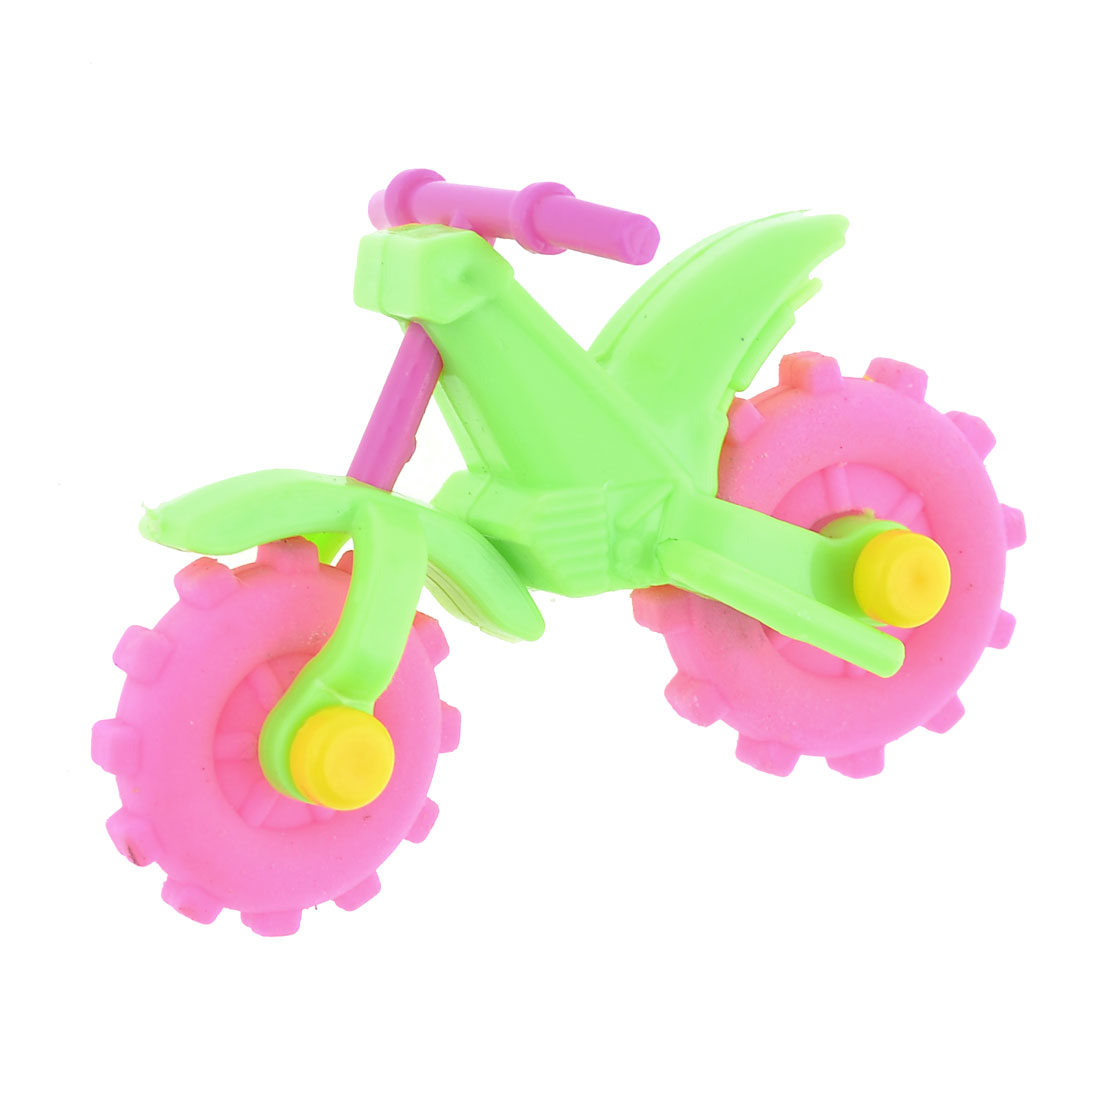 School Stationery Motorcycle Design Pink Rubber Erasers for Students